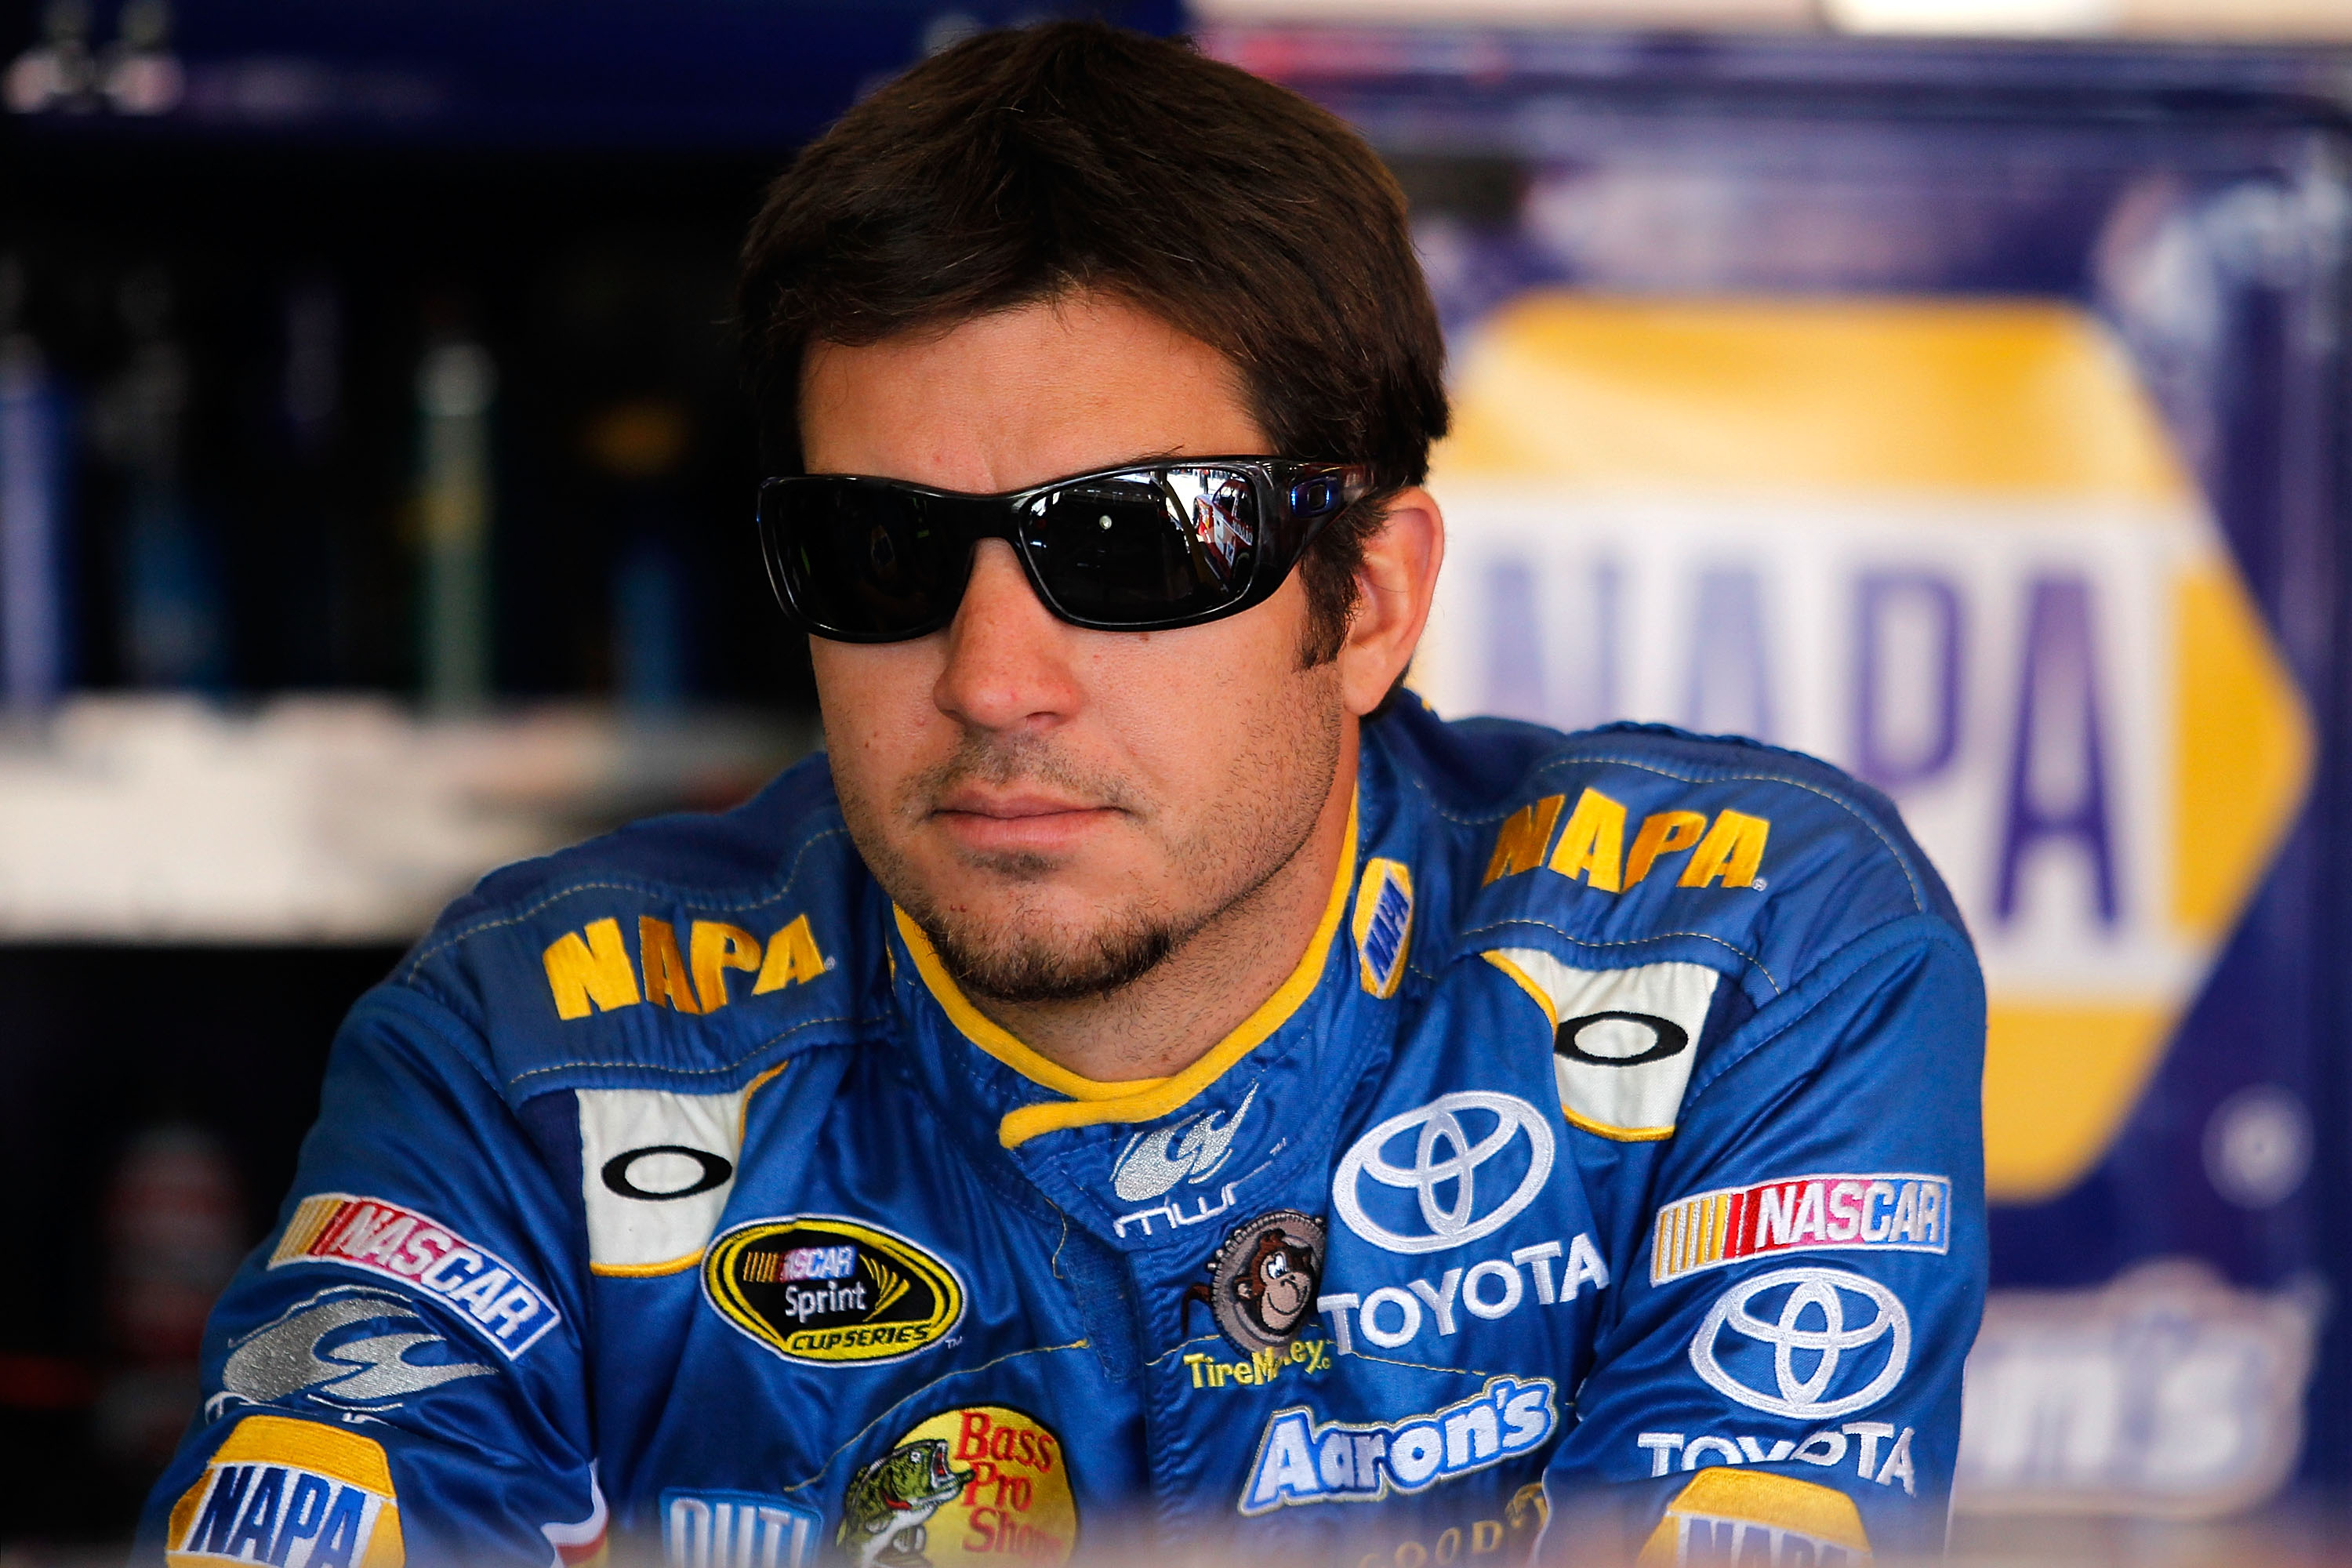 FONTANA, CA - OCTOBER 09:  Martin Truex Jr., driver of the #56 NAPA Toyota, stands in the garage during practice for the NASCAR Sprint Cup Series Pepsi Max 400 on October 9, 2010 in Fontana, California.  (Photo by Todd Warshaw/Getty Images for NASCAR)